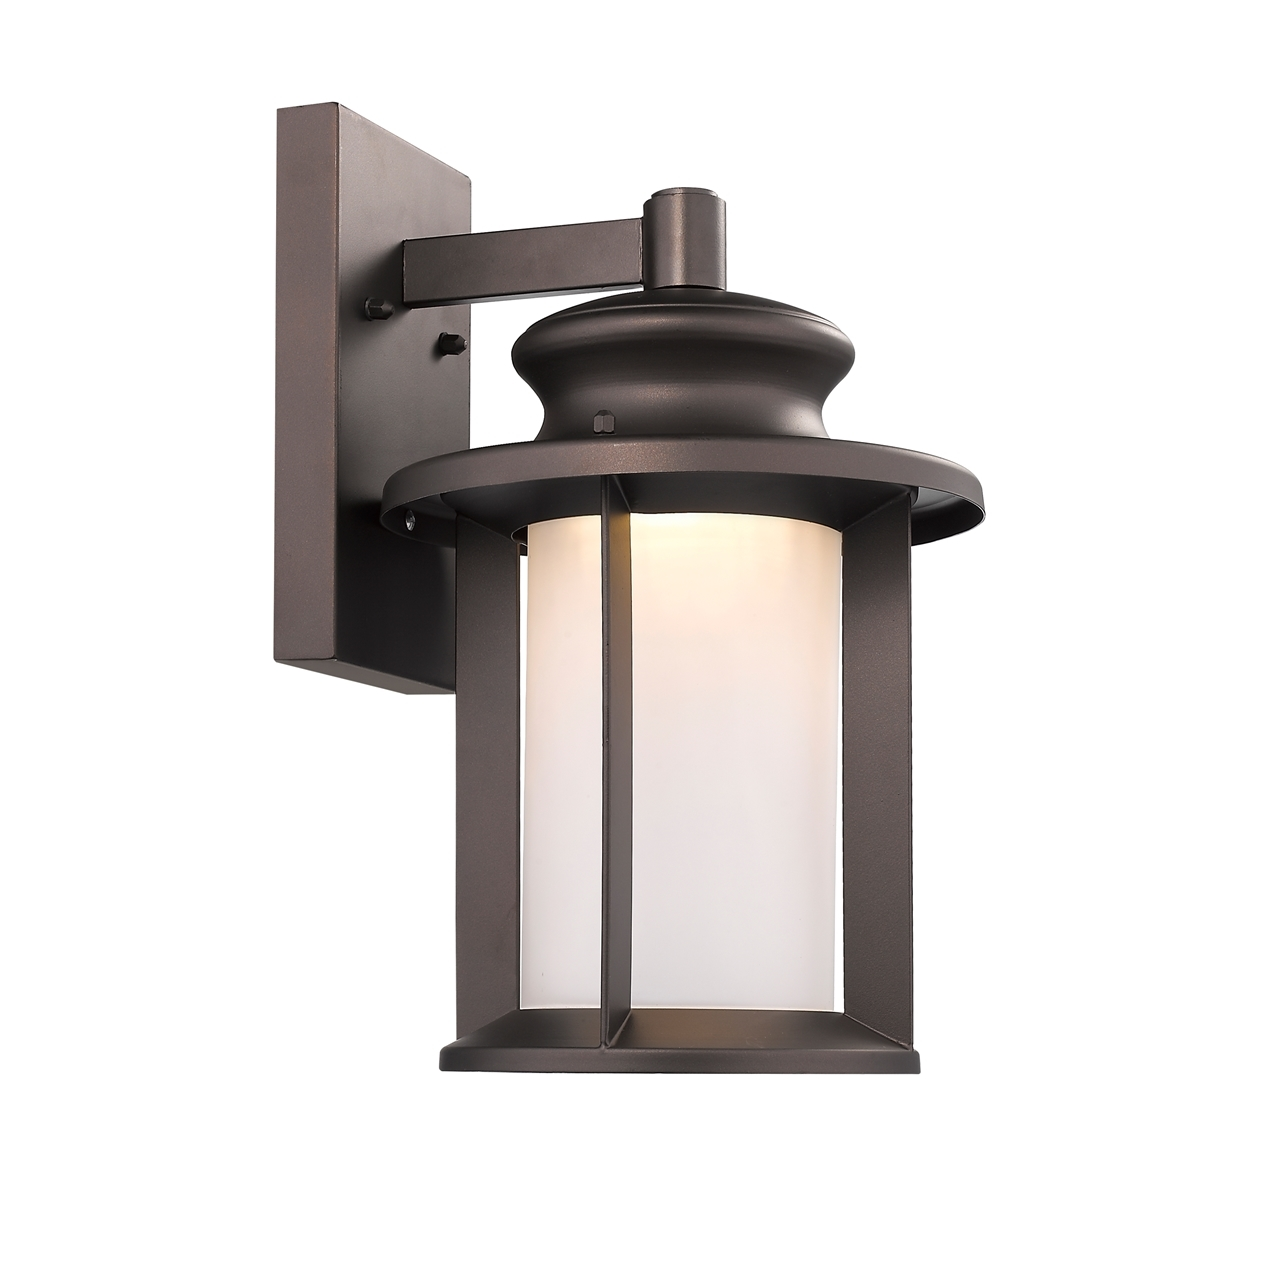 CHLOE Lighting, Inc CH2S074RB14-ODL LED Outdoor Sconce on Led Sconce Lighting id=14533